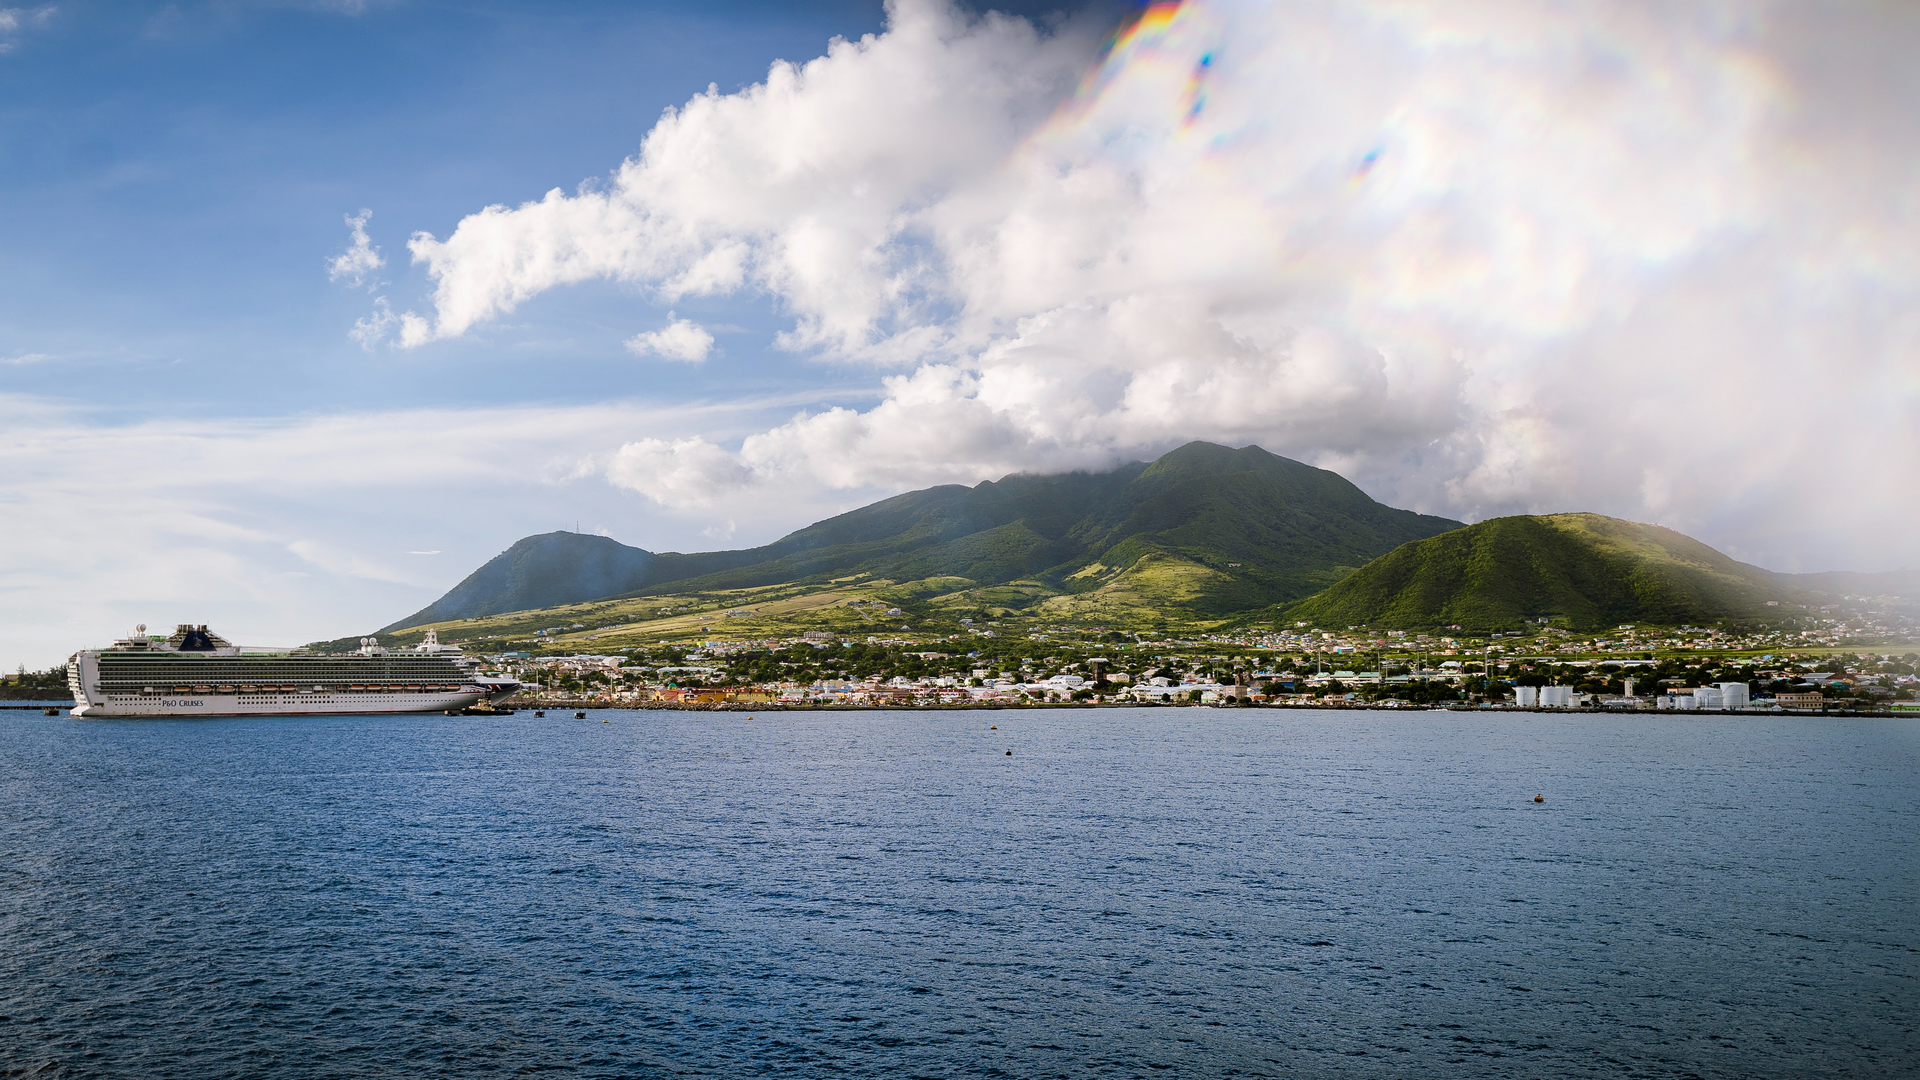 A view in Saint Kitts and Nevis